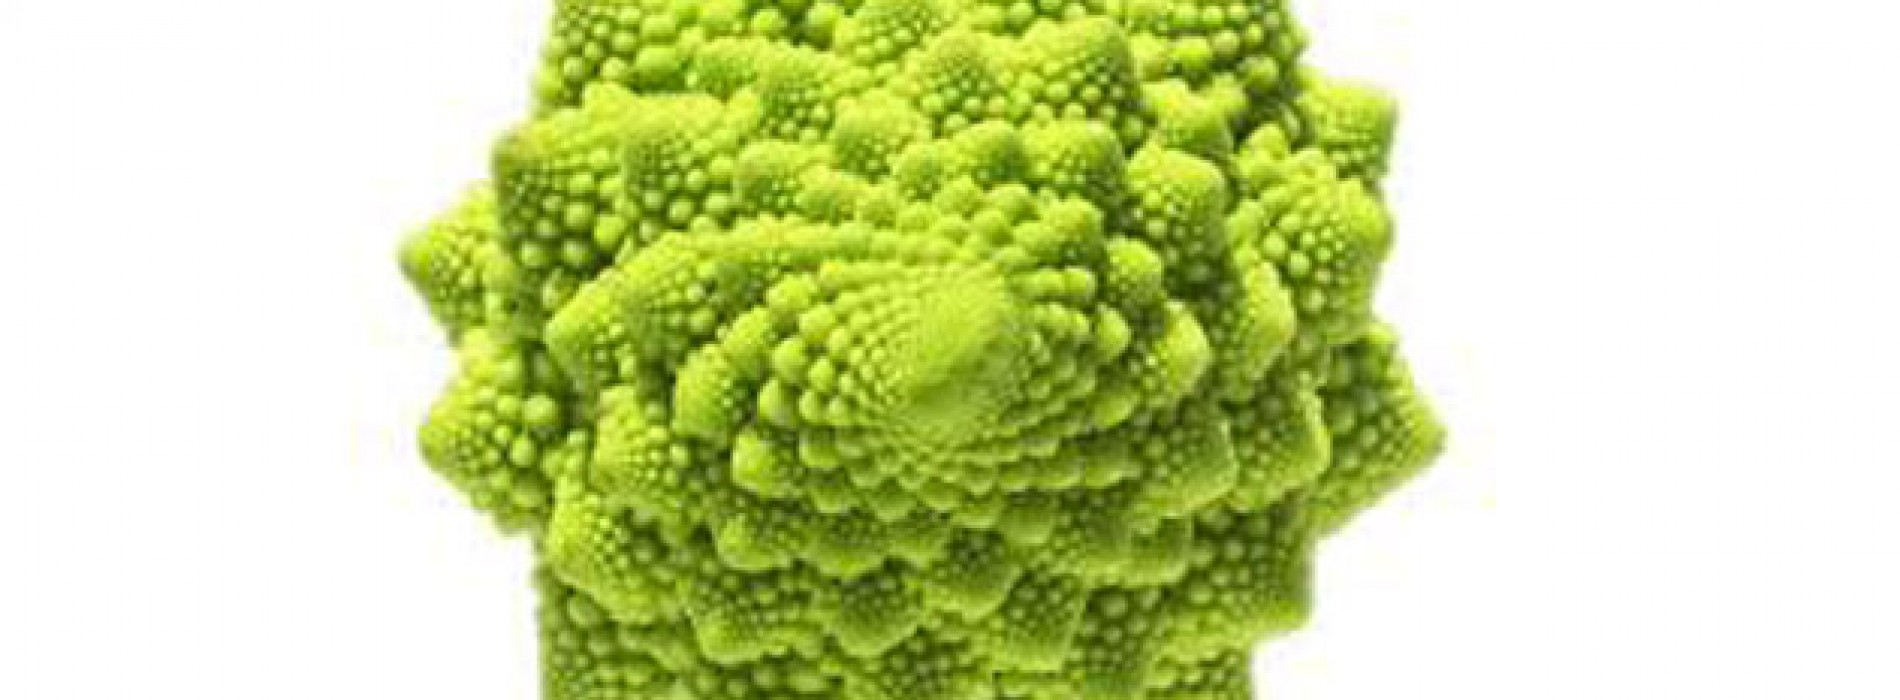 What's So Great About Cruciferous Vegetables